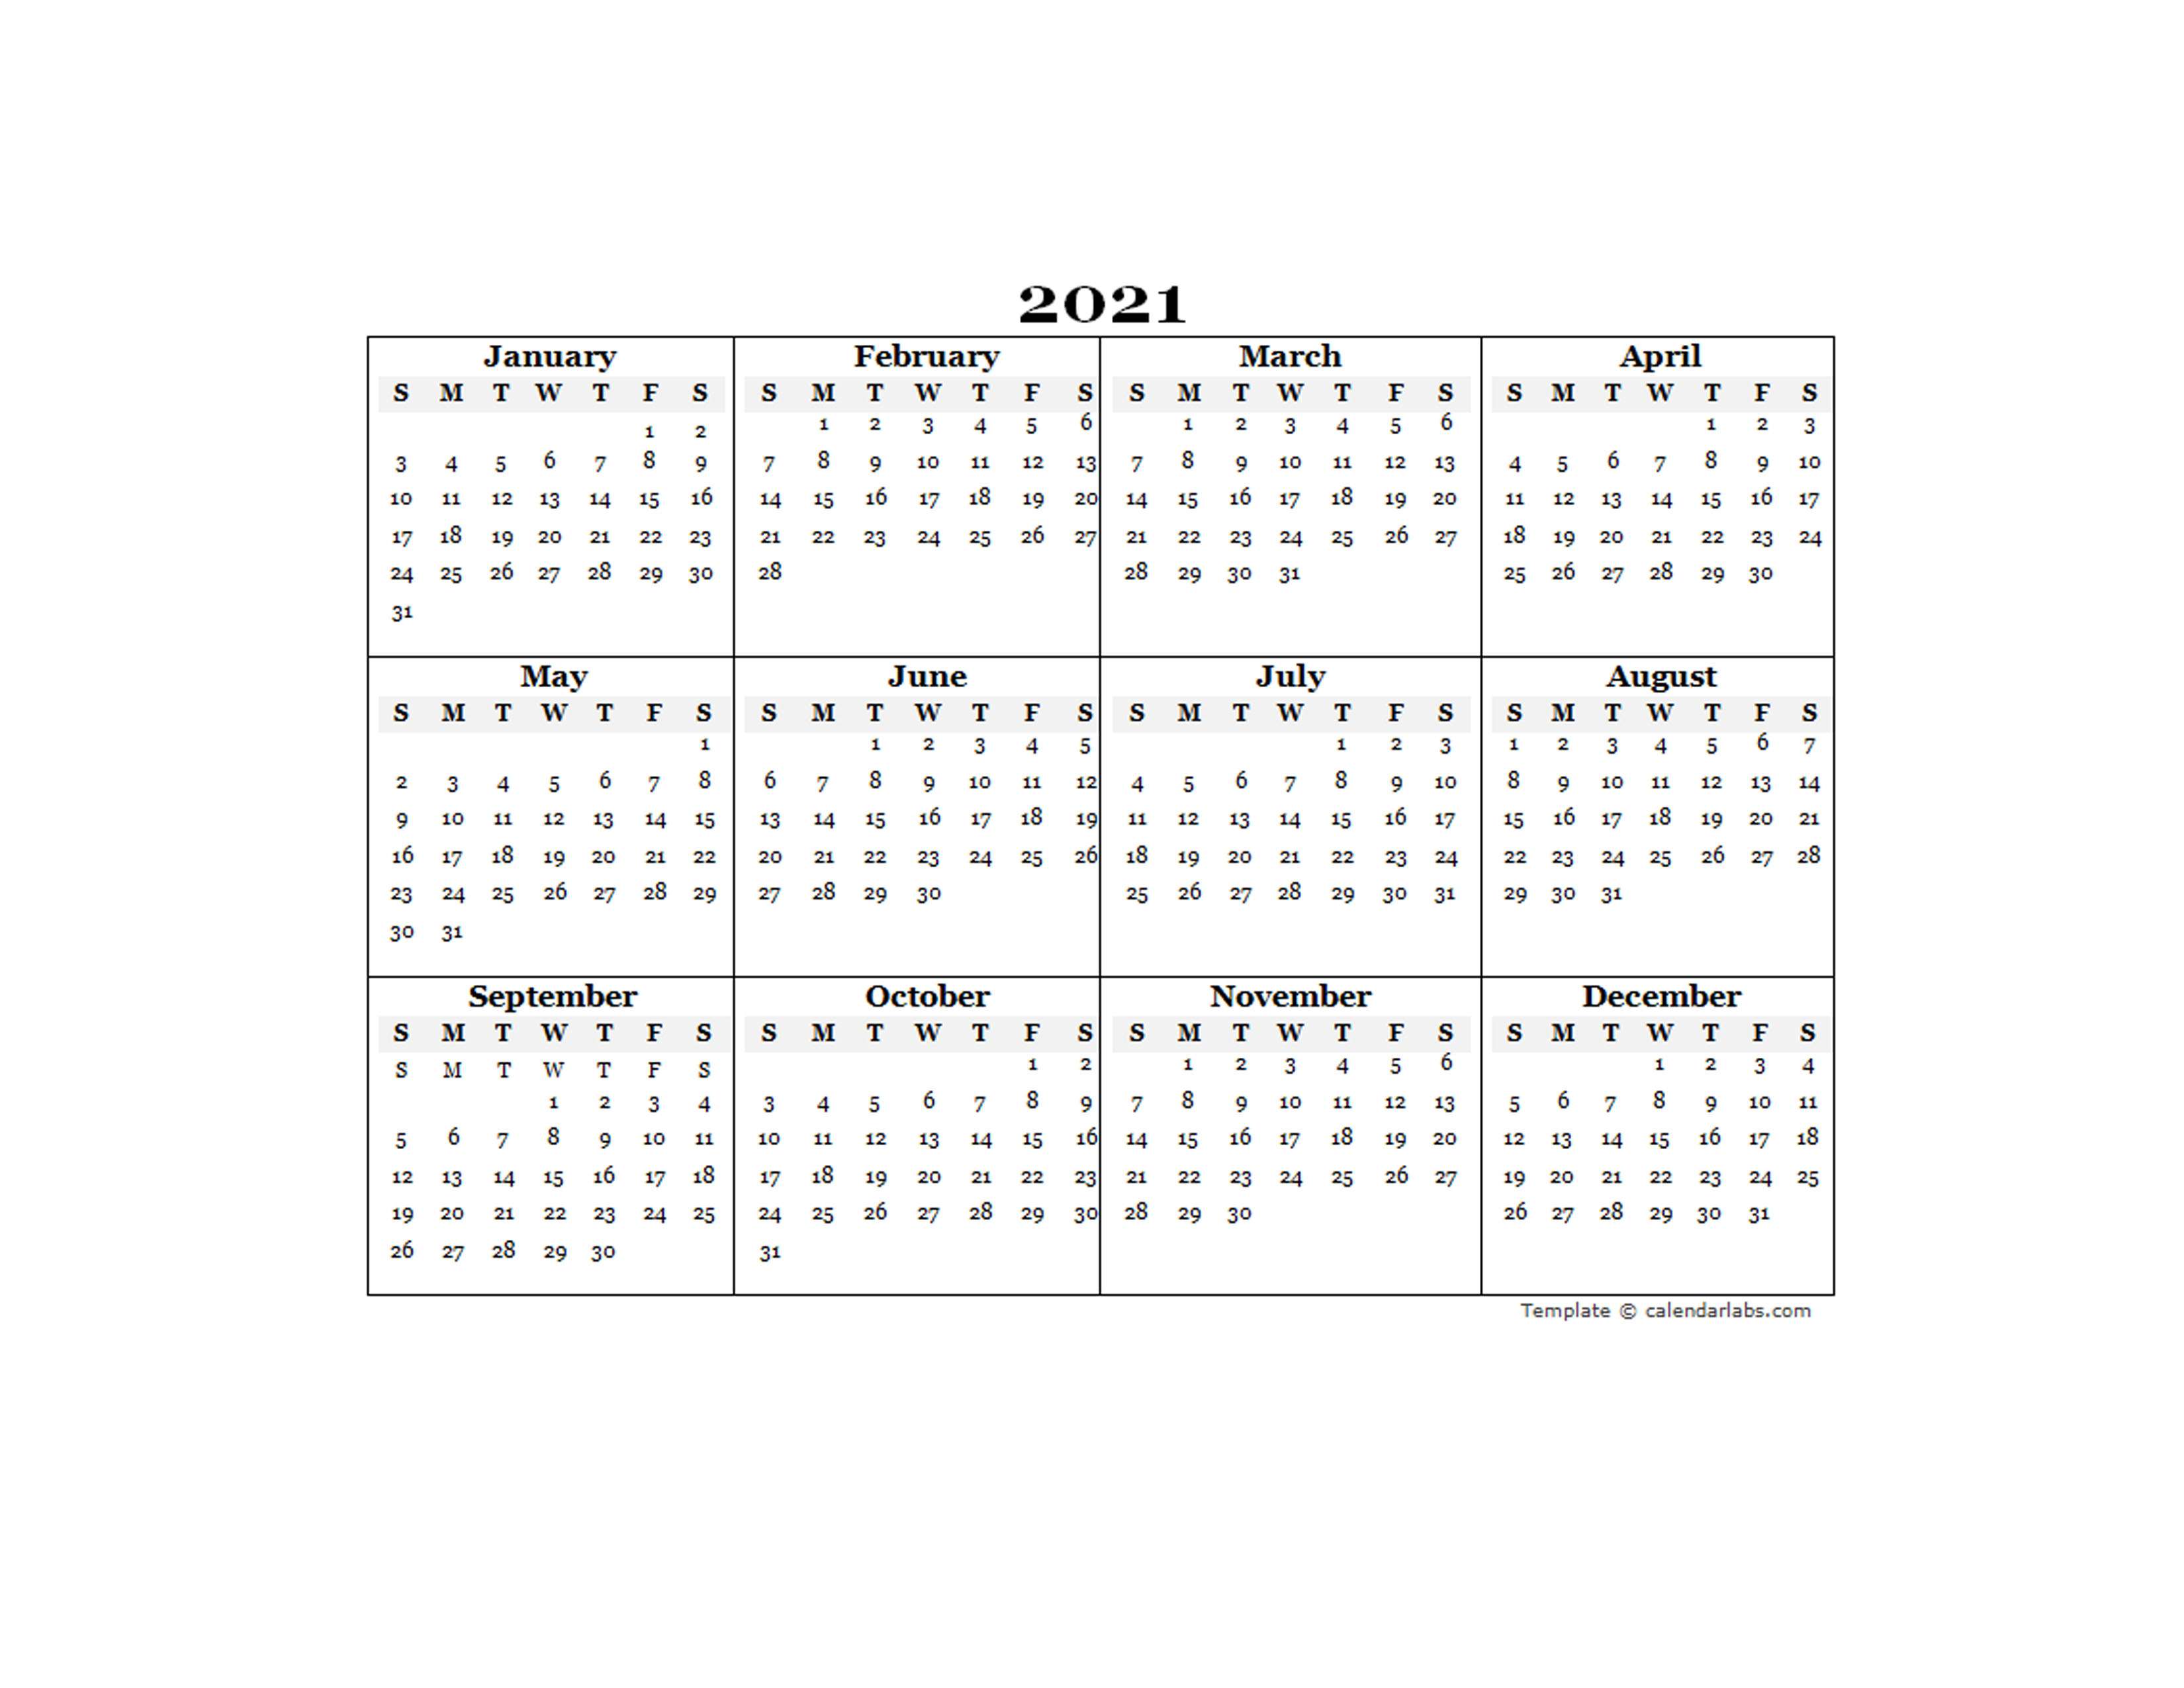 2021 Blank Yearly Calendar Template - Free Printable Templates